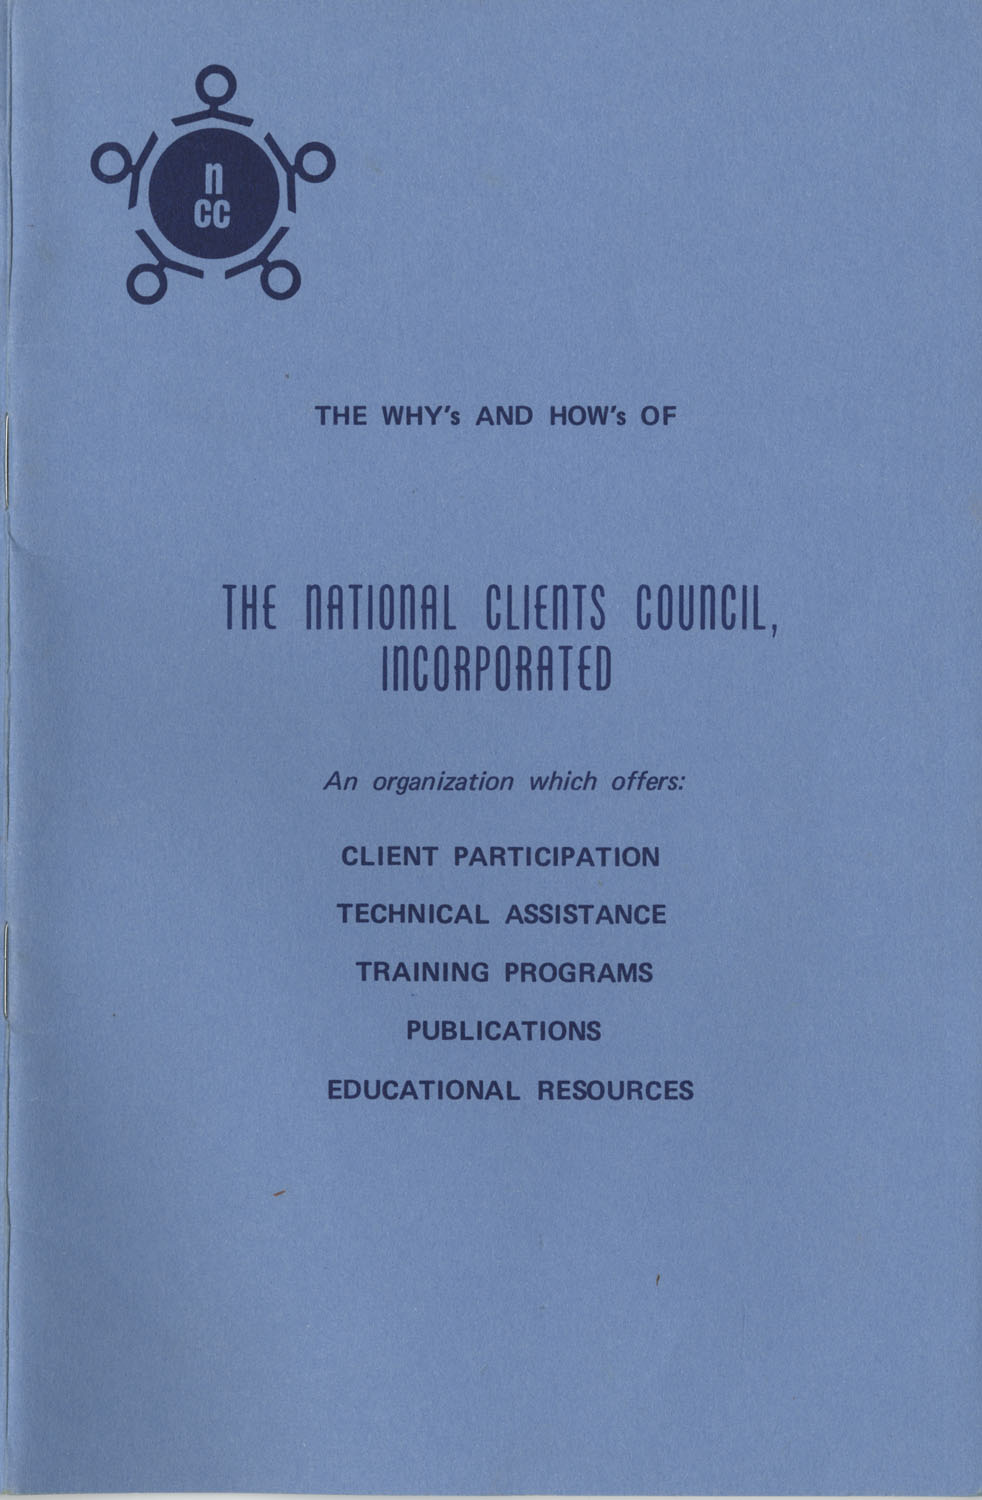 The Why's and How's of The National Clients Council, Front Cover